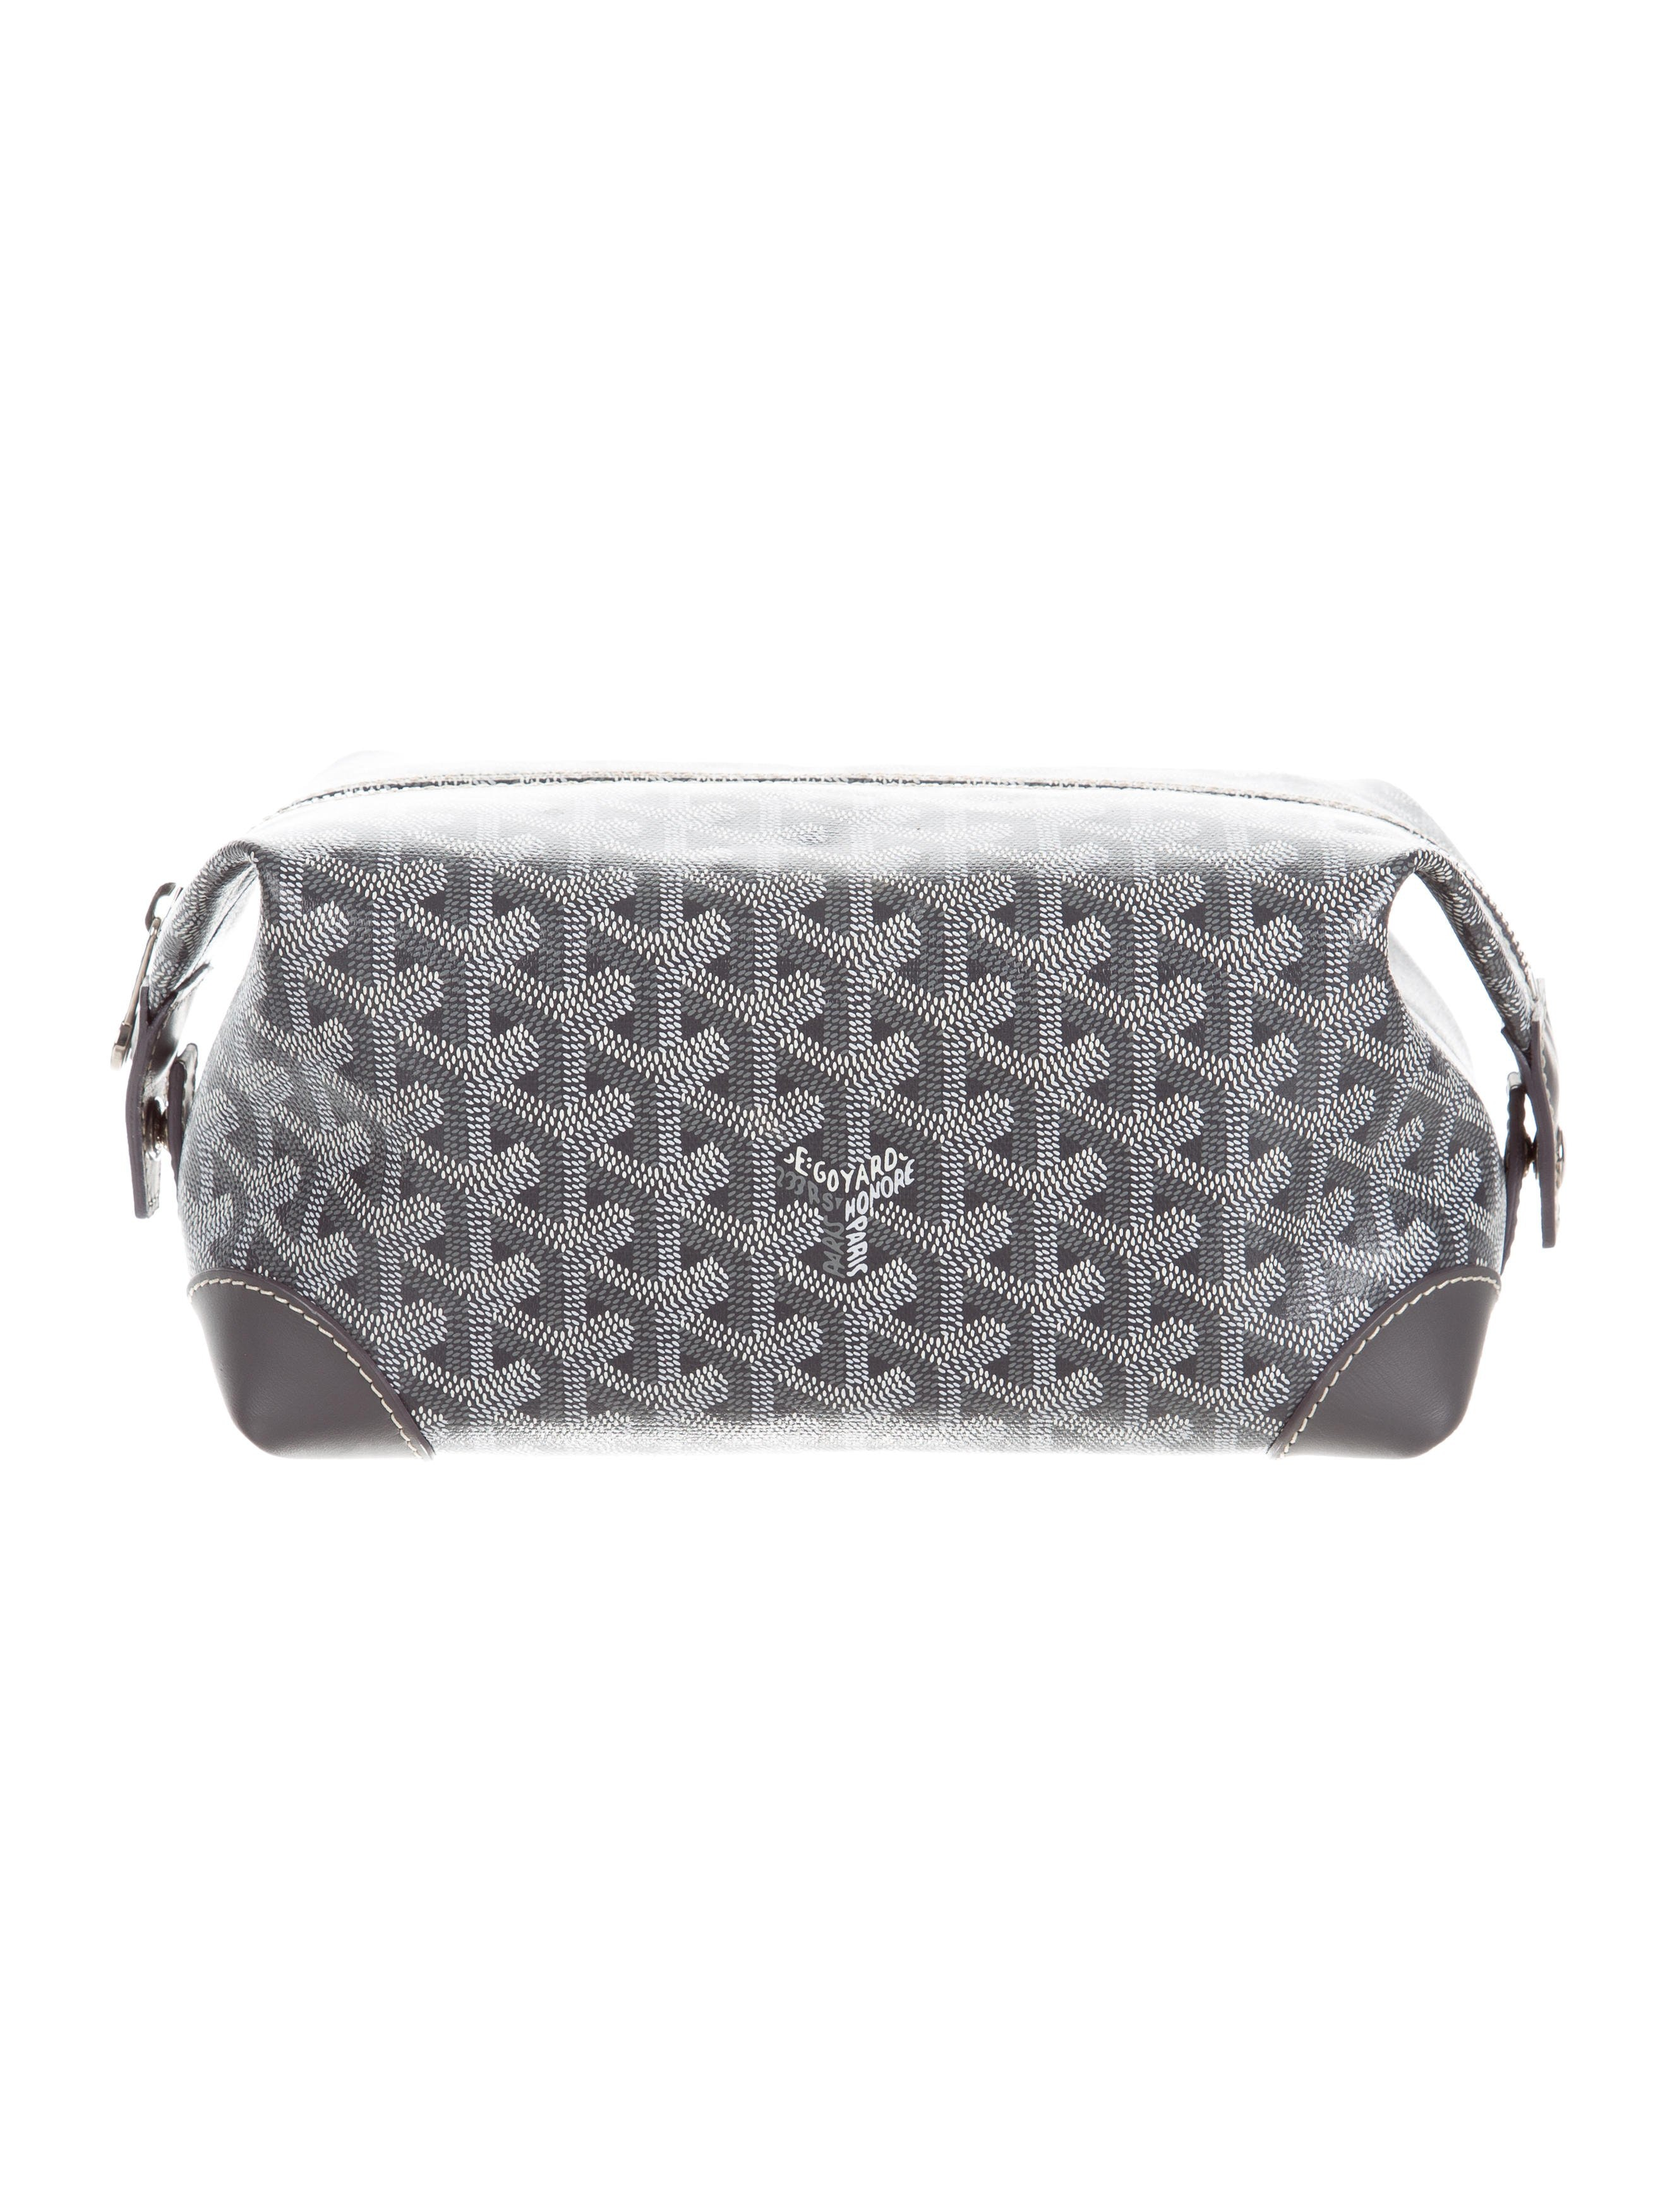 Goyard Boeing Trousse de Toilette Toiletry Bag Monogram Chevron 25 Grey